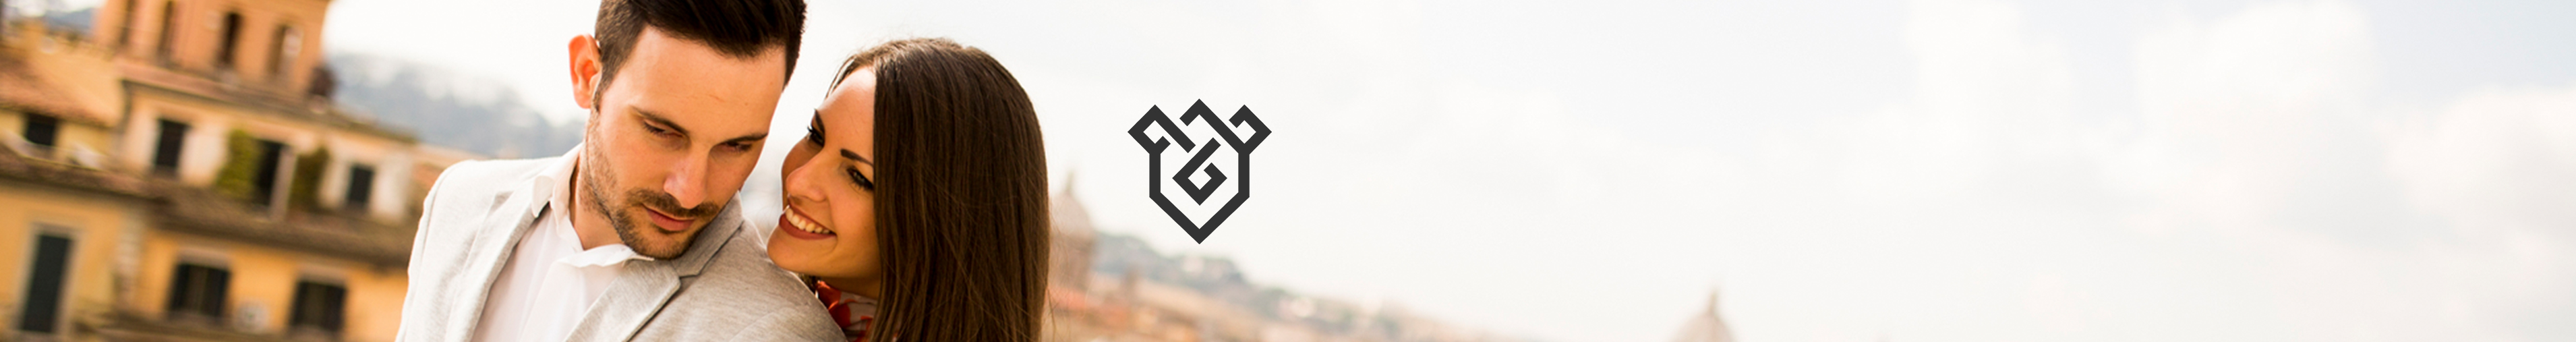 Influence co banner3